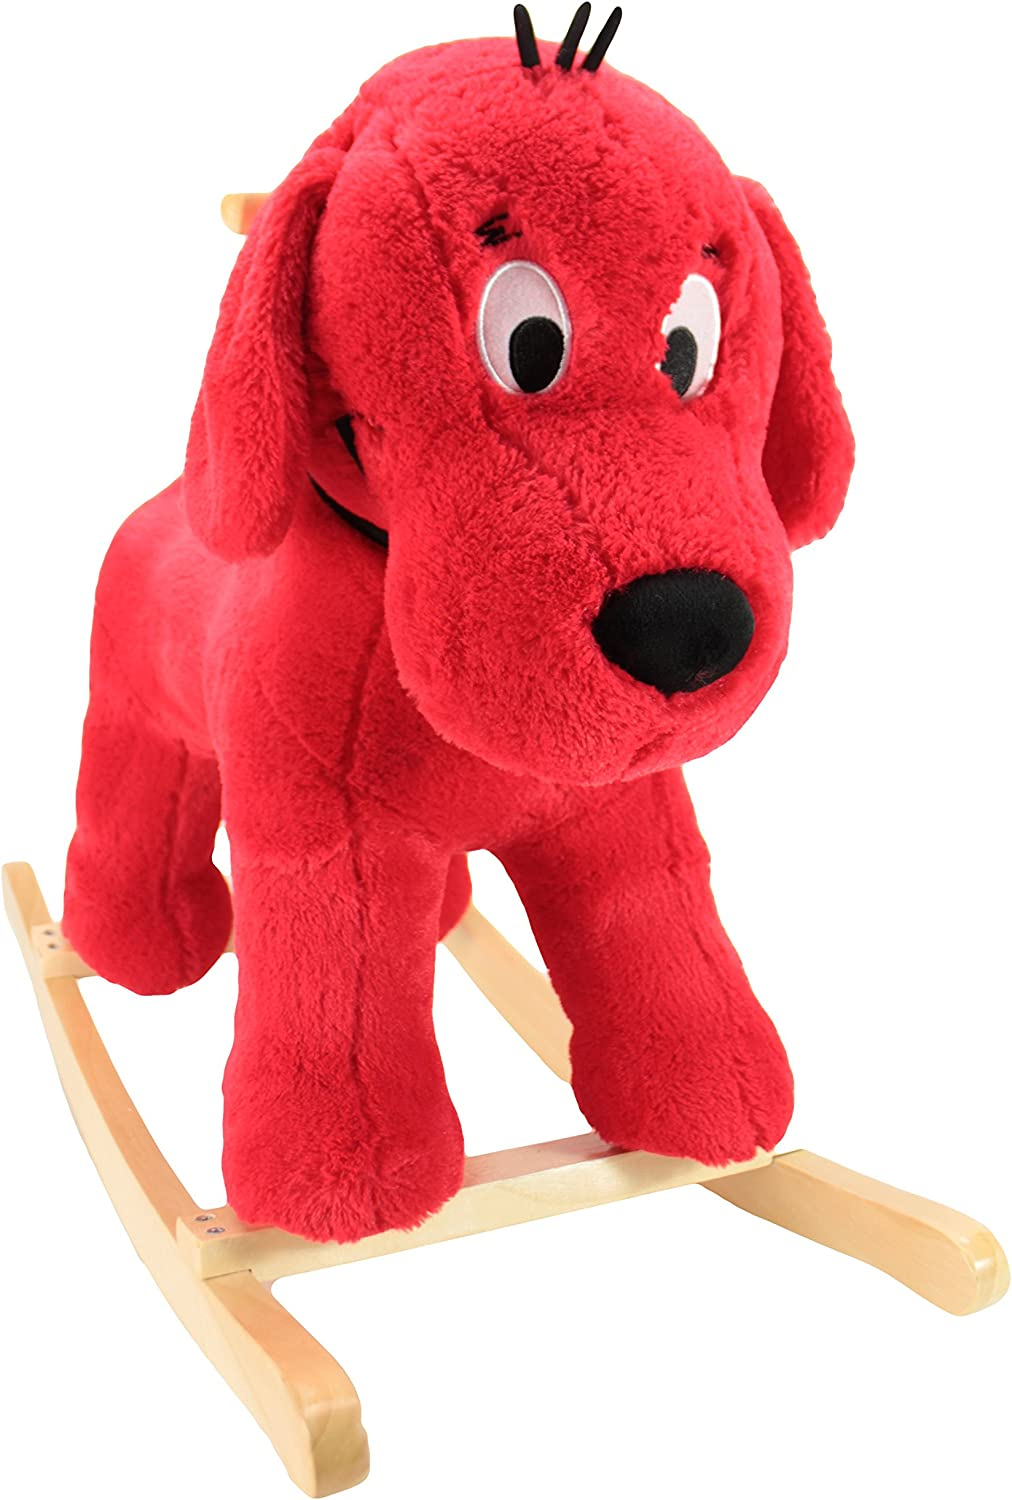 Top 10 Best Rocking Horse Toy (2020 Reviews & Guide) 9